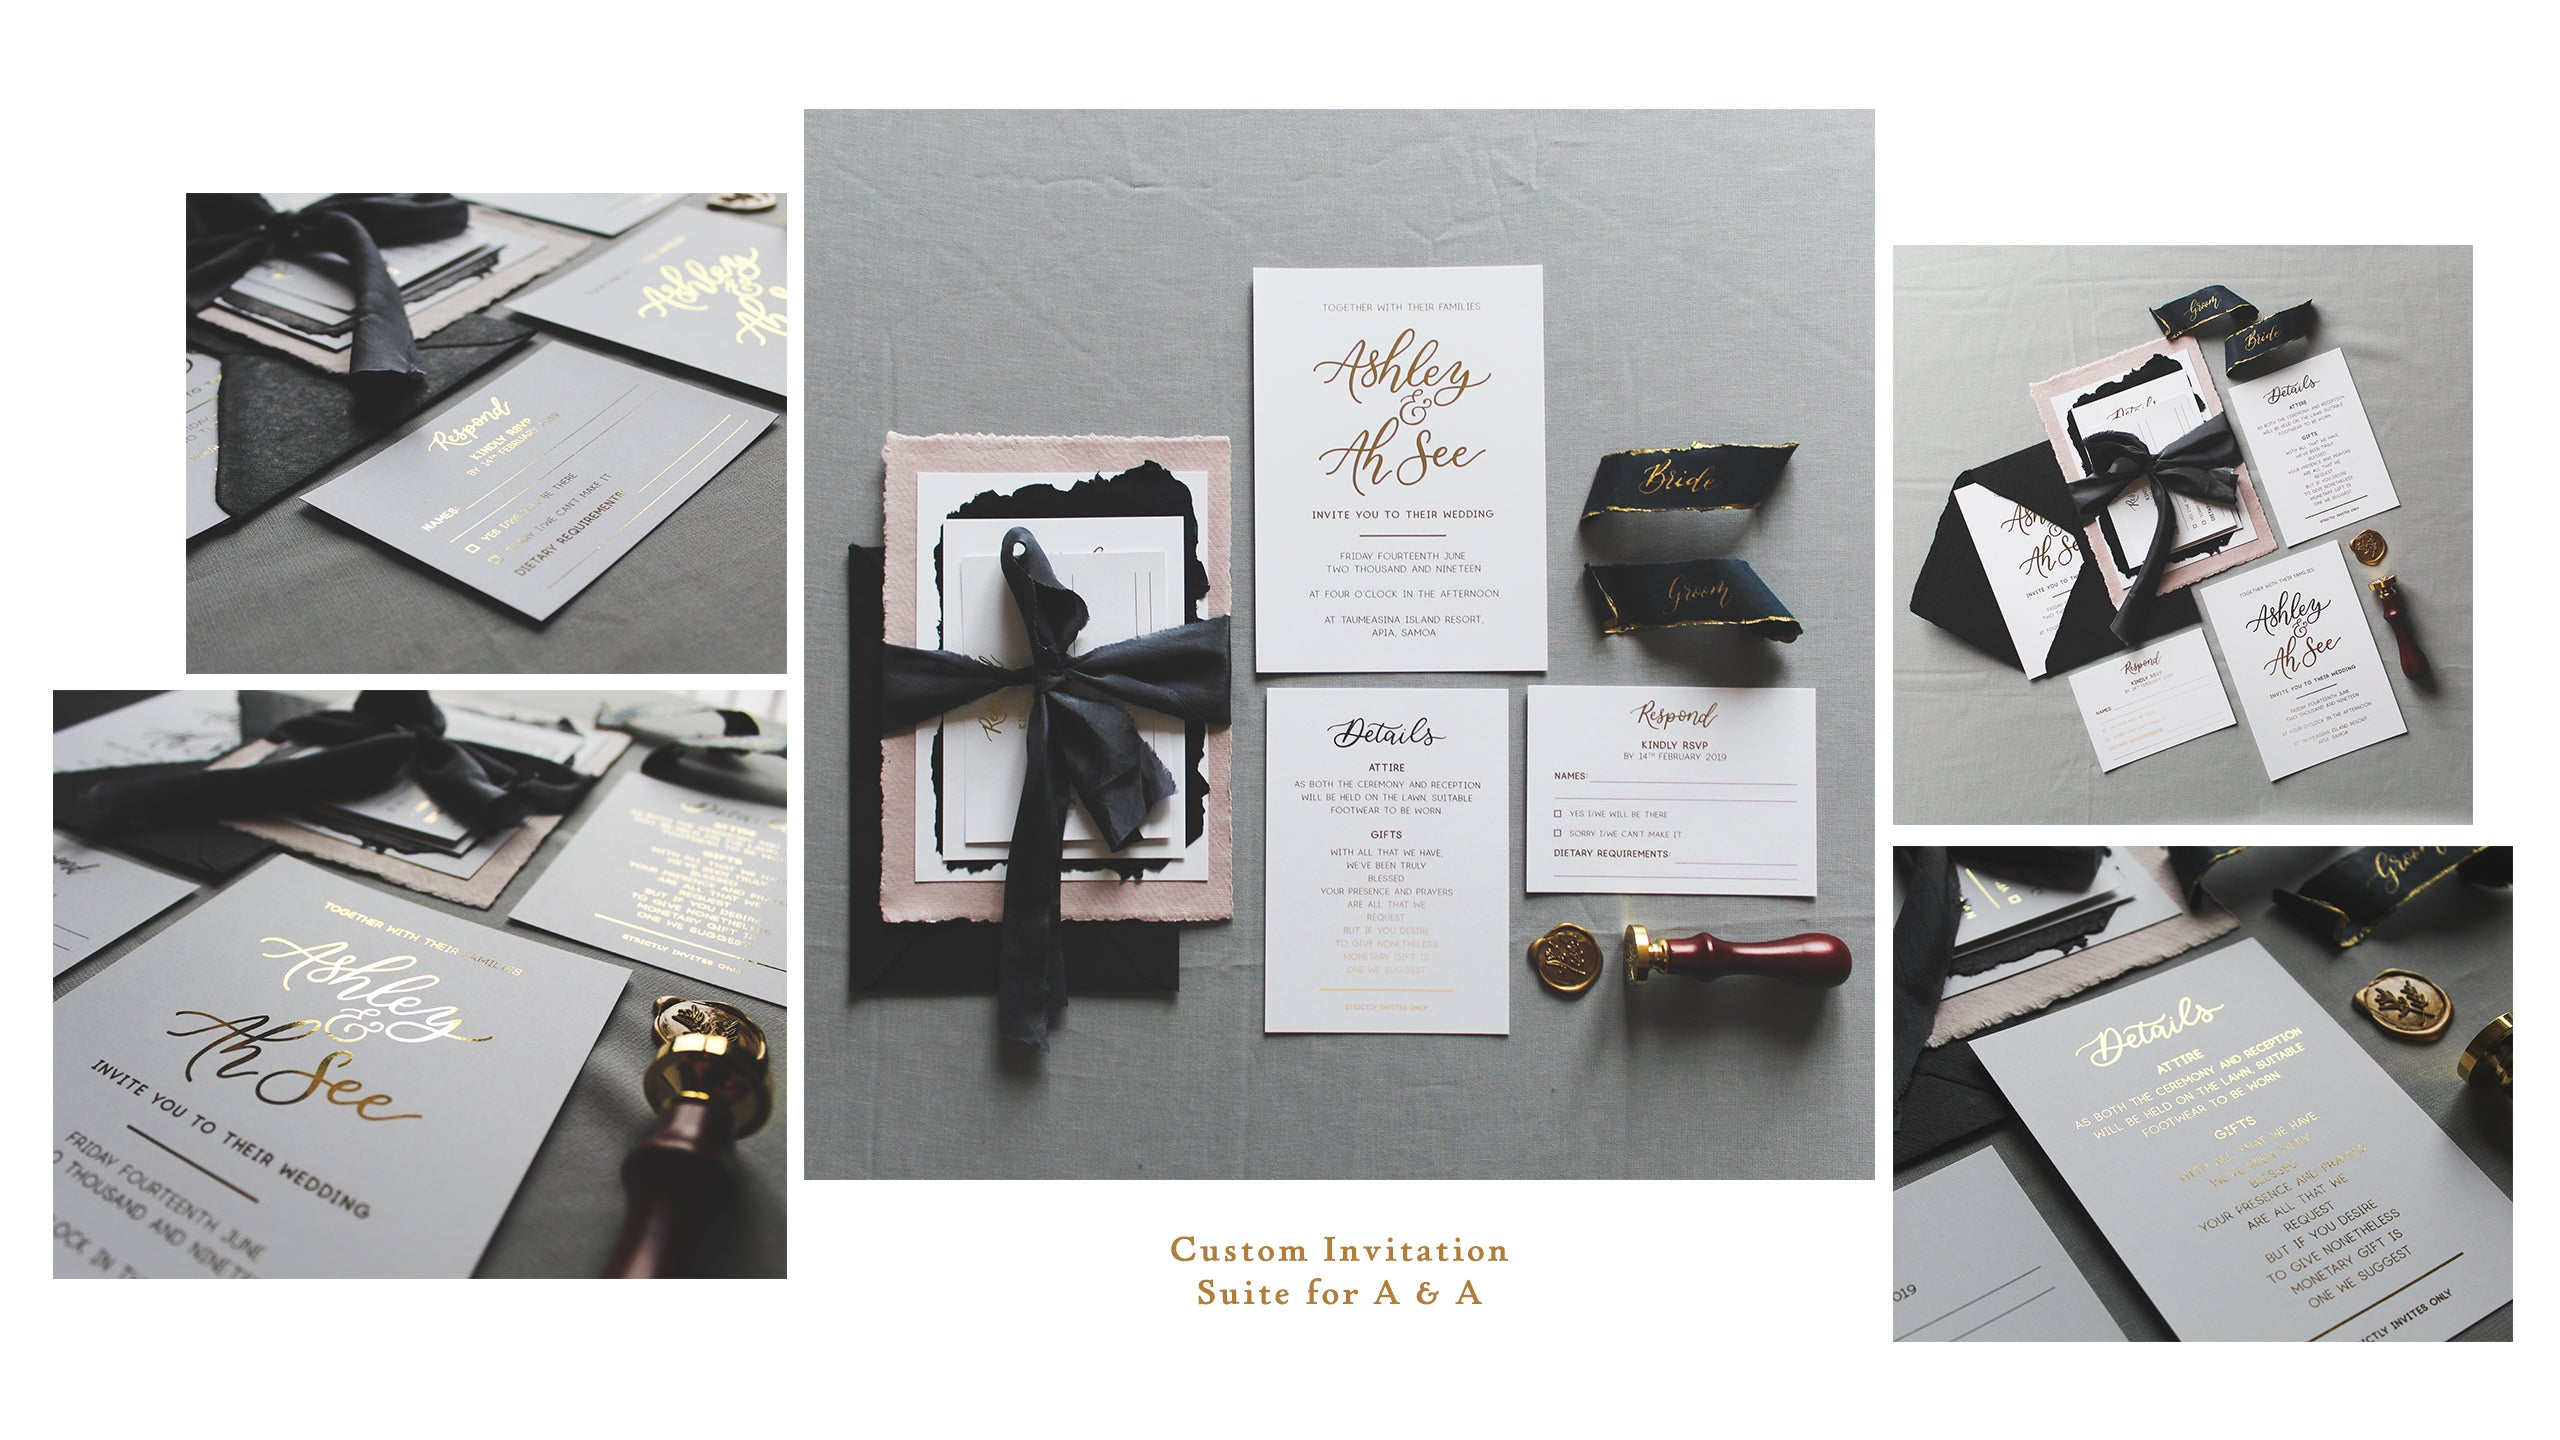 custom wedding invitation suite with hand lettering modern calligraphy and gold foil